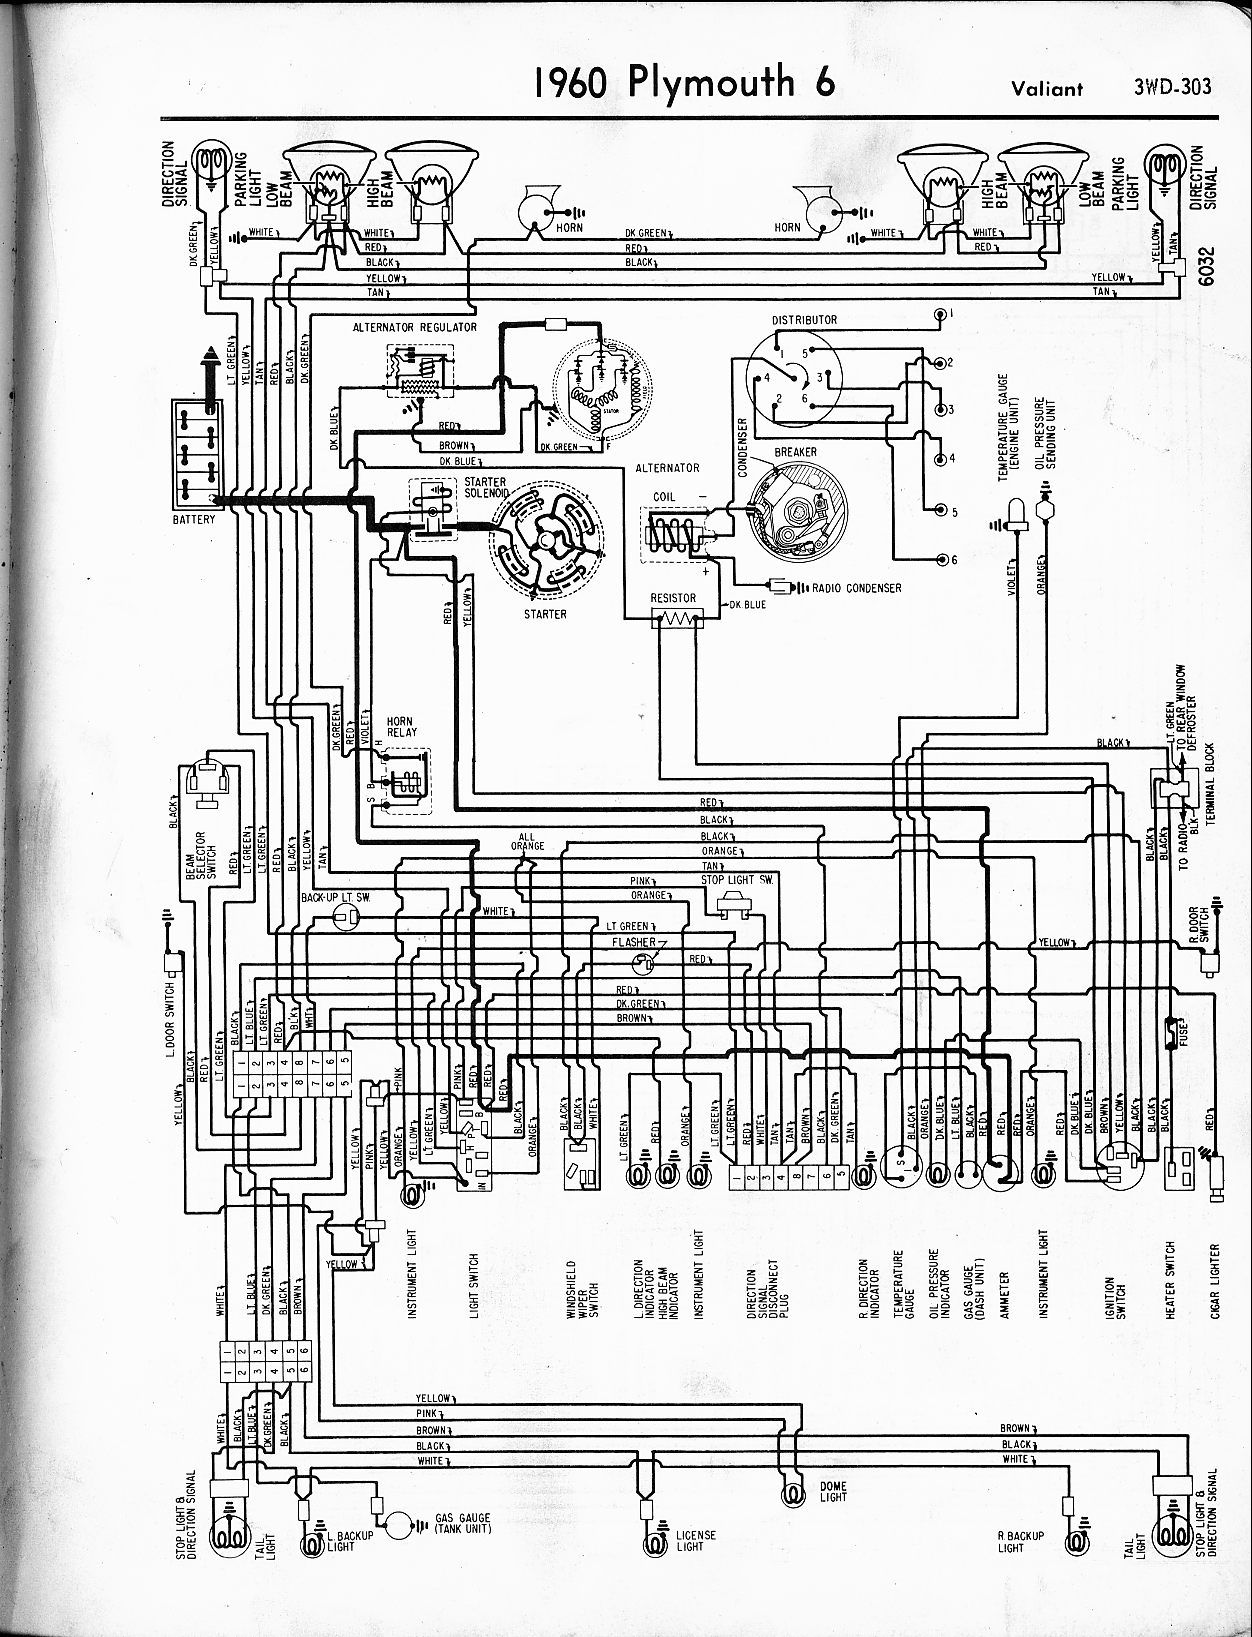 1955 thunderbird wiring diagram free 1958 imperial wiring diagram - diagrams online #13